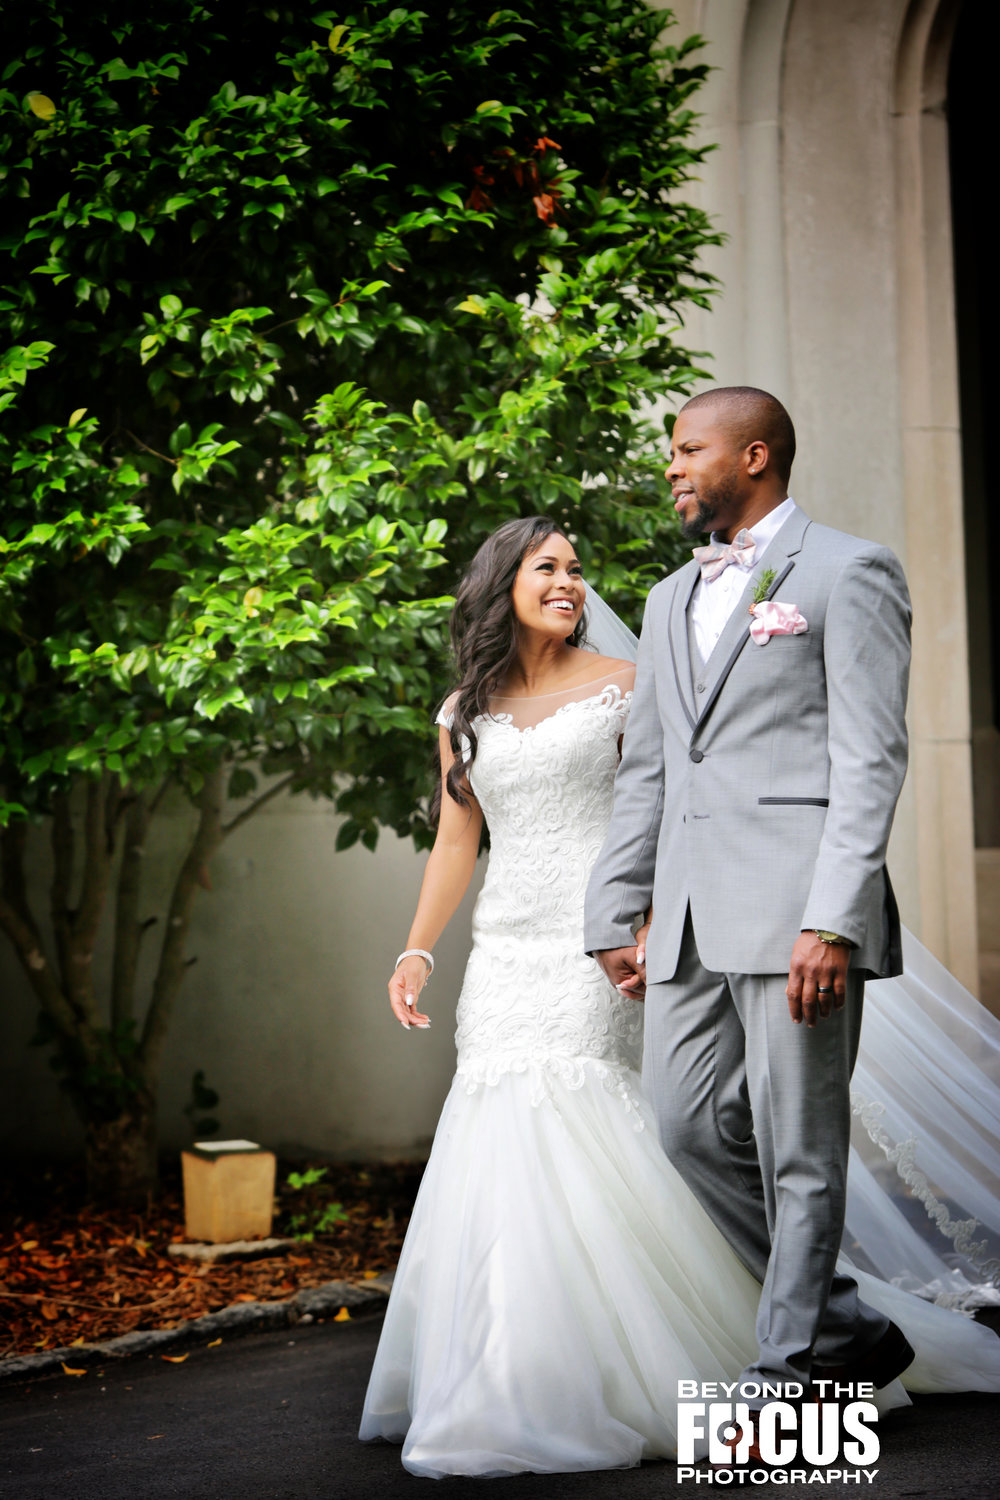 Christan_Imani_WeddingPartyFamily_W_48.jpg